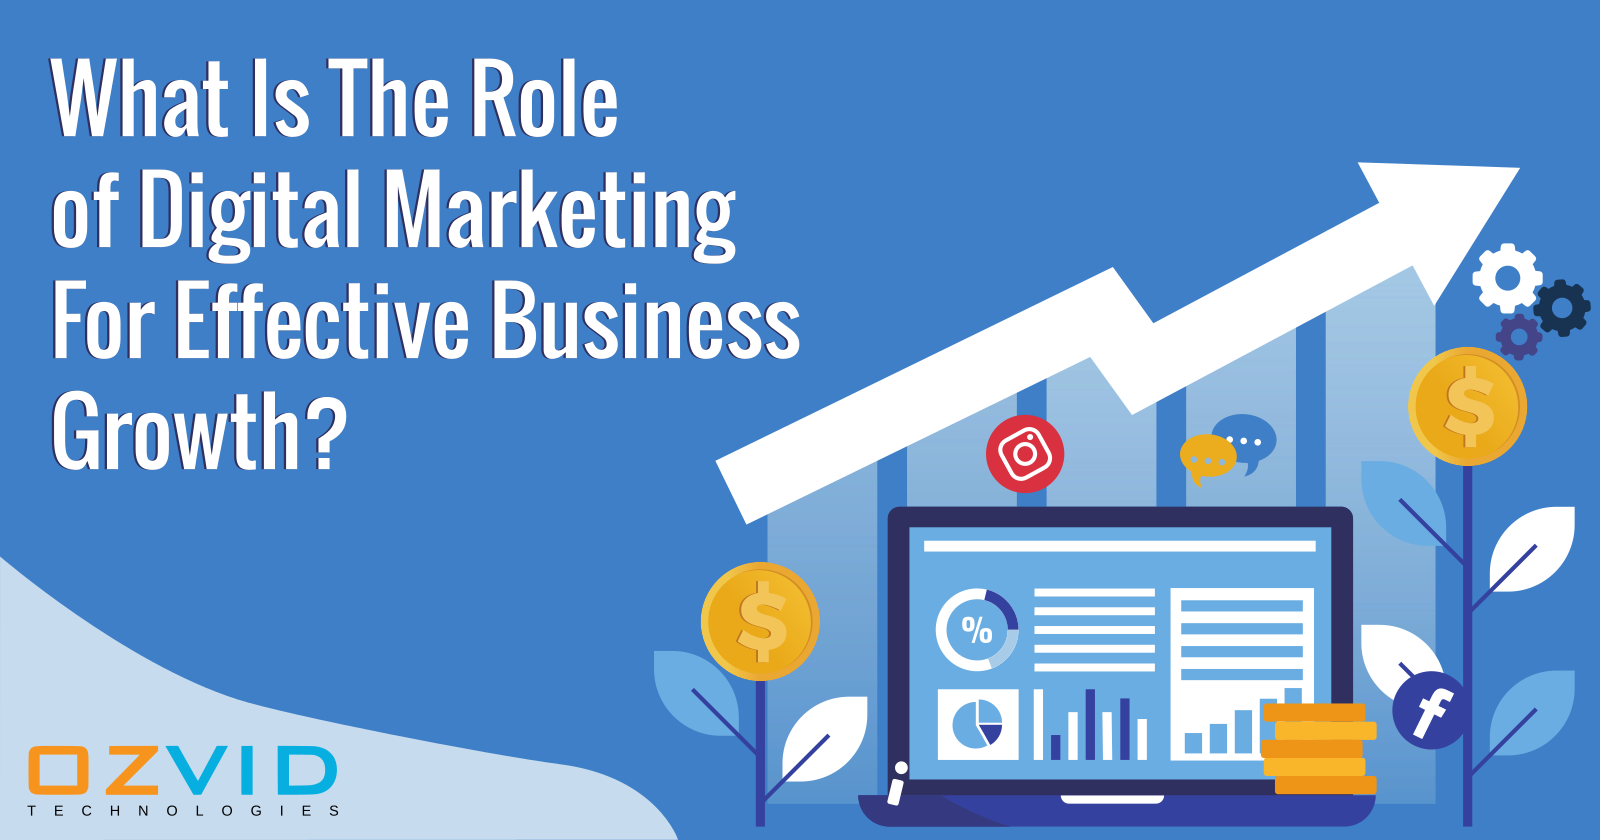 What Is The Role of Digital Marketing For Effective Business Growth?